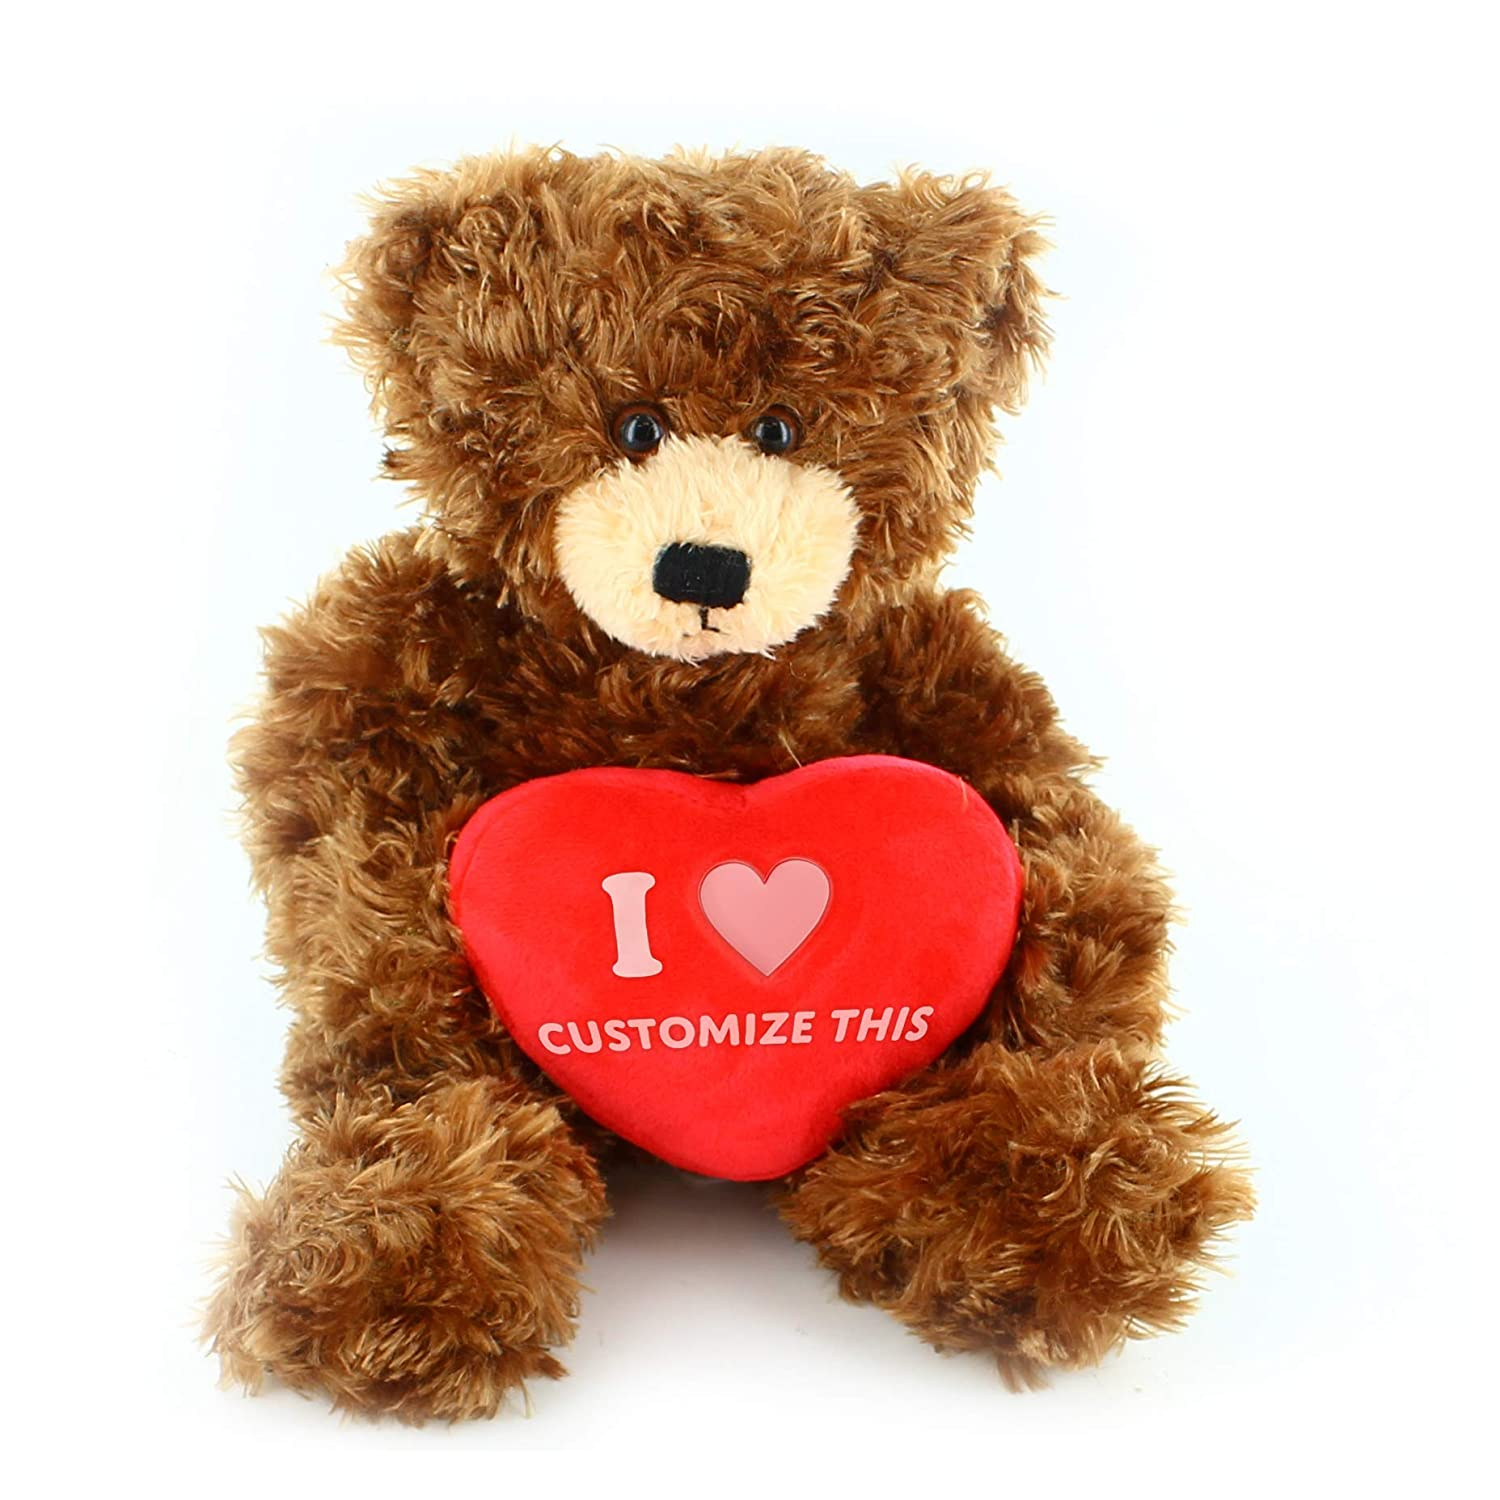 Plushland Brandon Bear 12 Inches with Custom Heart, Chocolate Teddy Bear Stuffed Animal - Valentine Day Personalized Gift for Girls, Boys and Your Loved ...